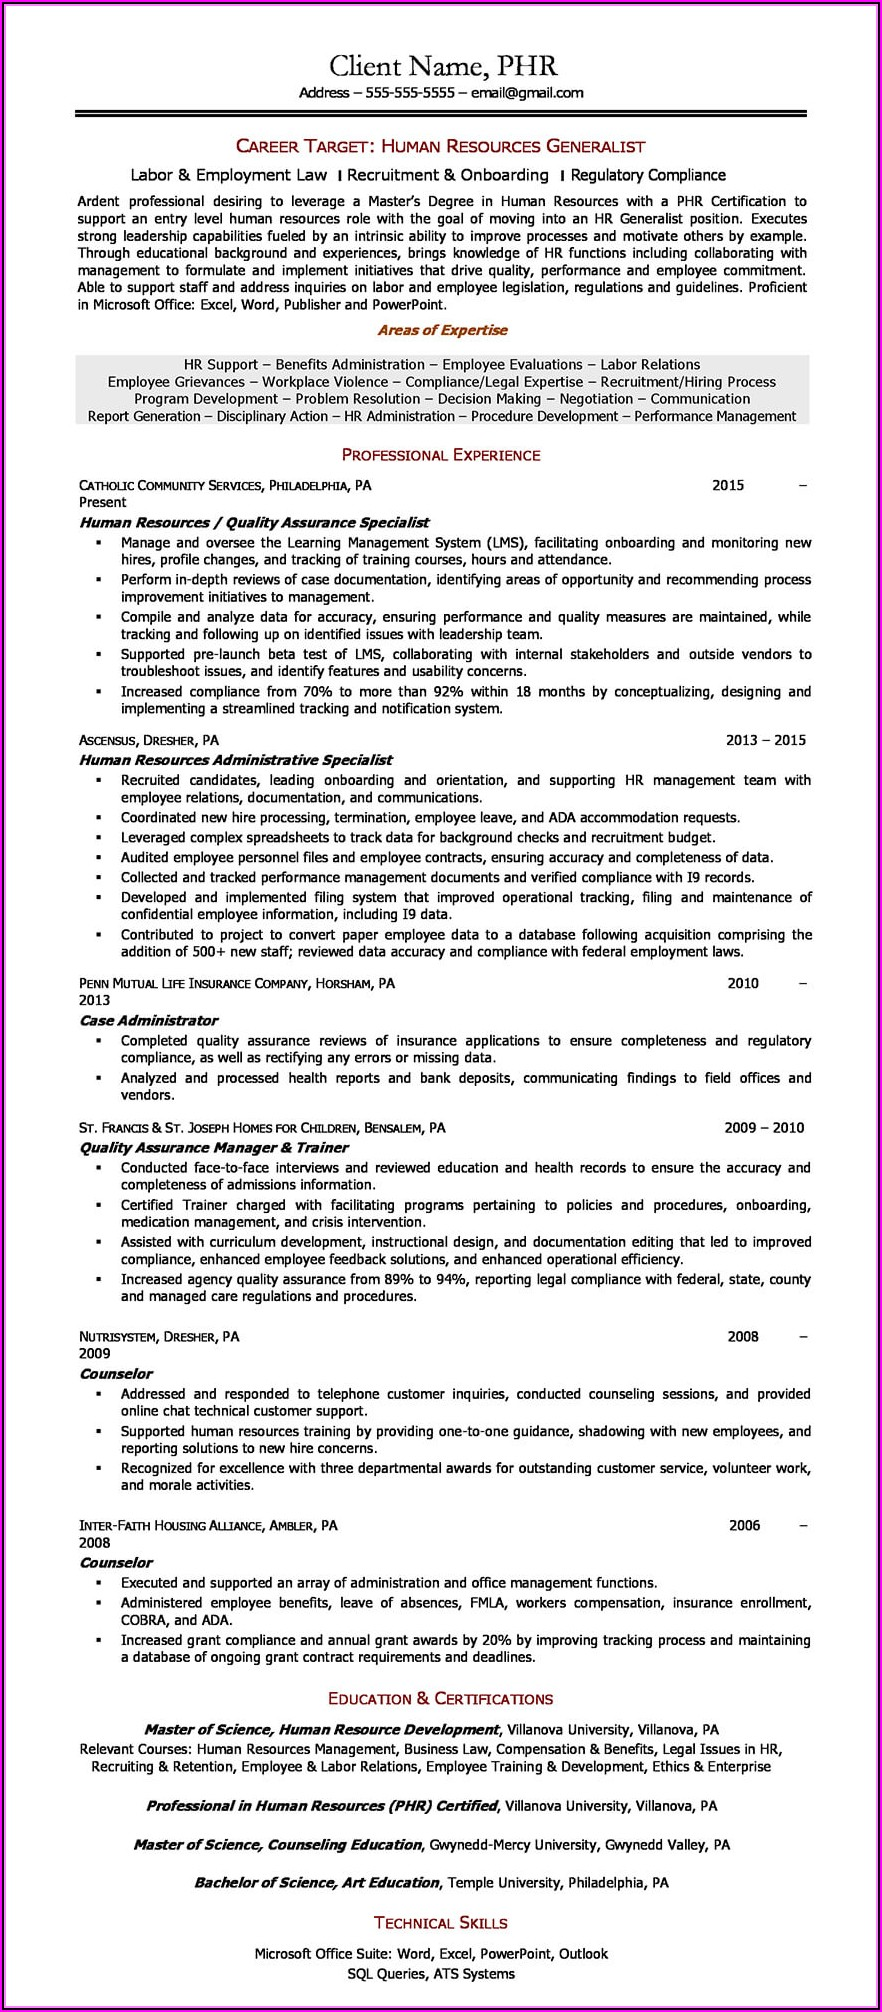 resume writing services mn best in minneapolis pencraft professional northern social Resume Pencraft Resume Services